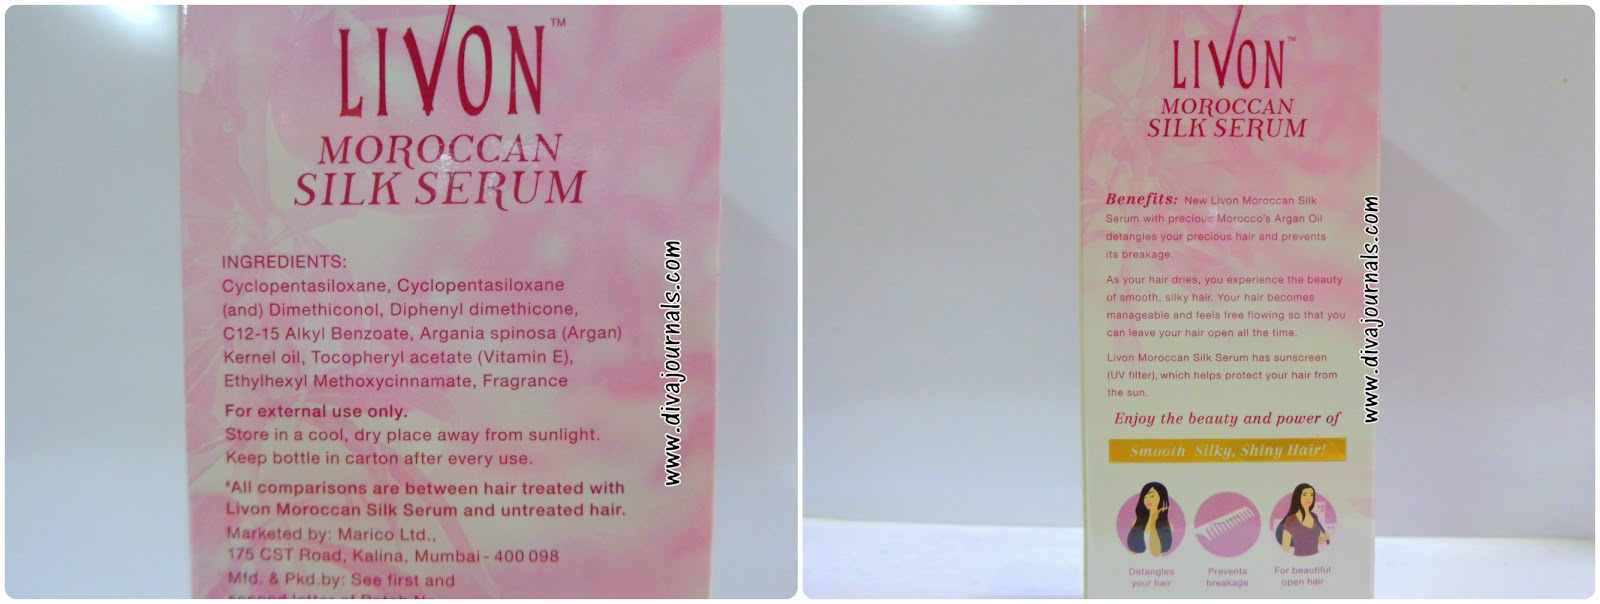 Livon Moroccan Silk Serum Review